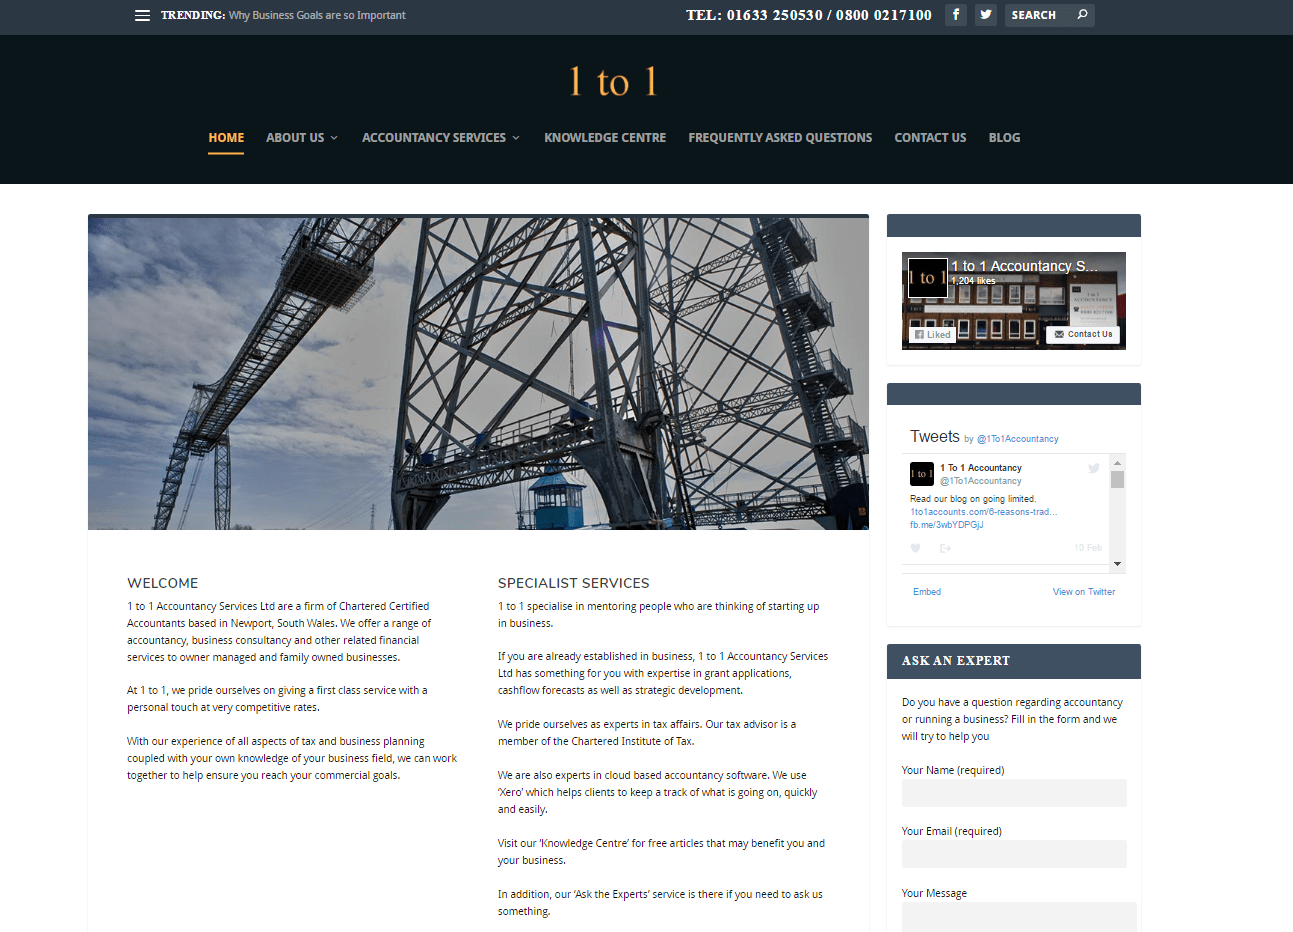 1to1 Accountancy Services